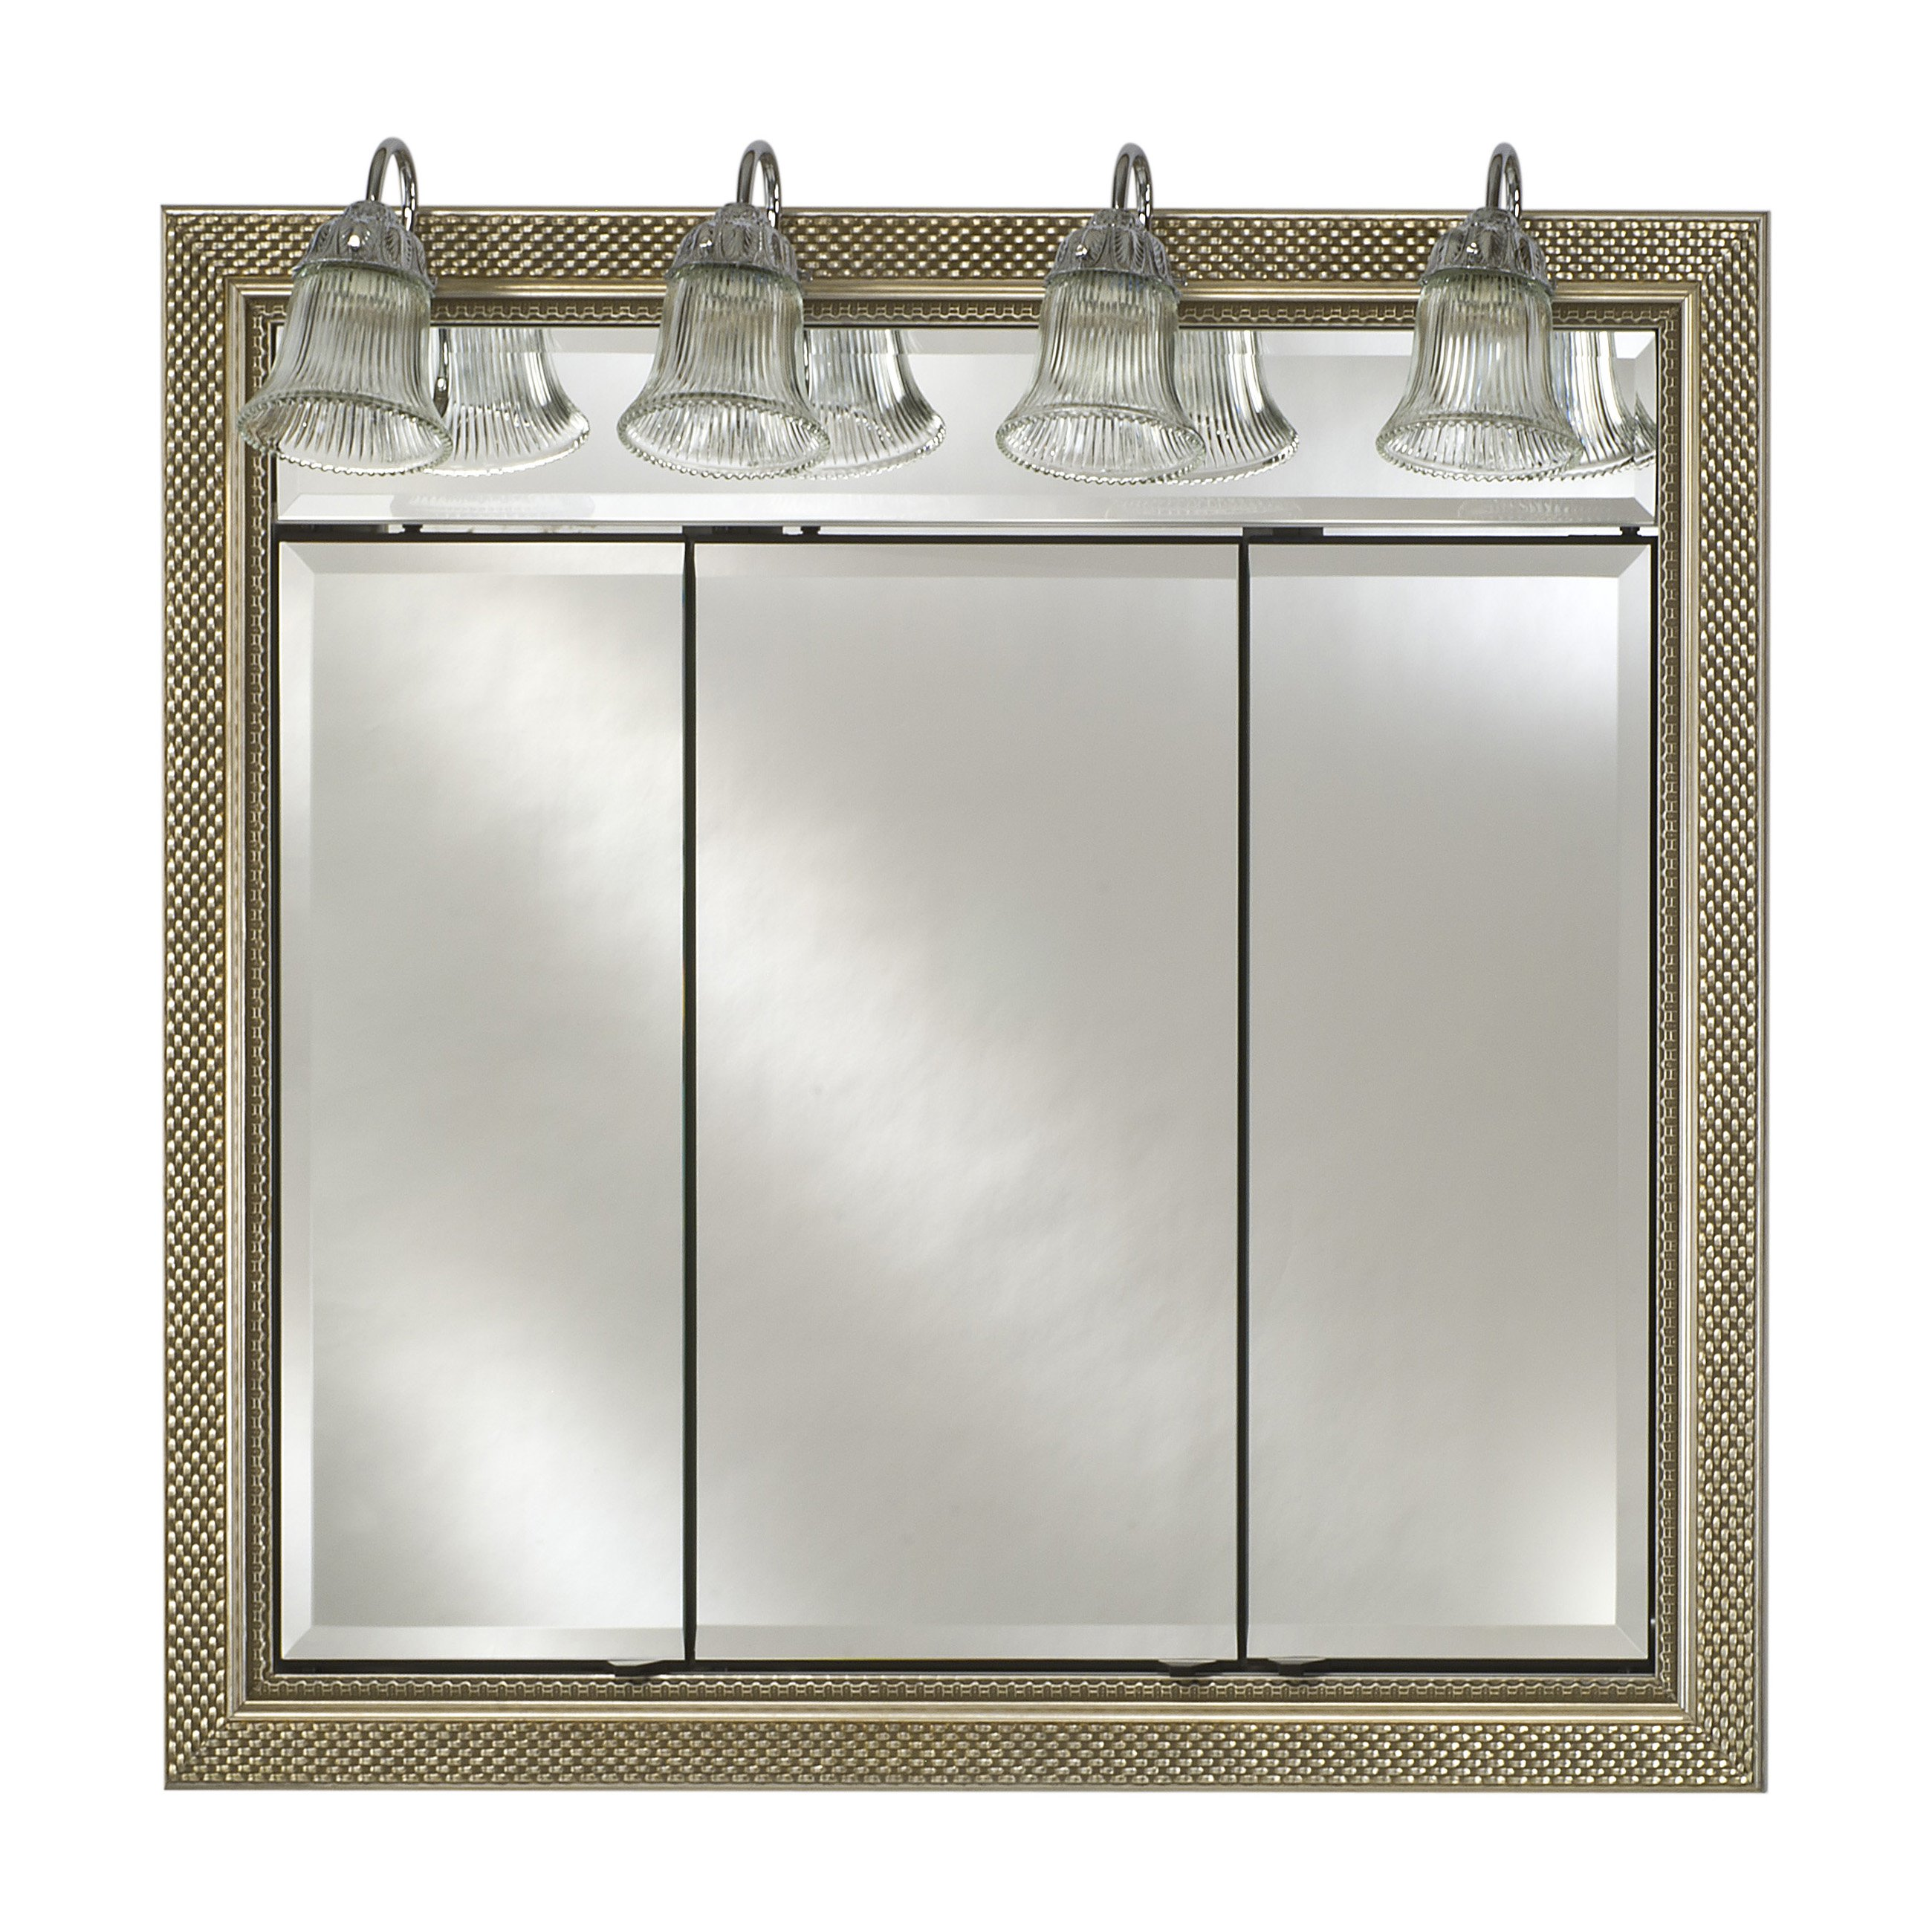 Afina Signature Traditional Lighted Triple Door 44W x 34H in. Recessed Medicine Cabinet